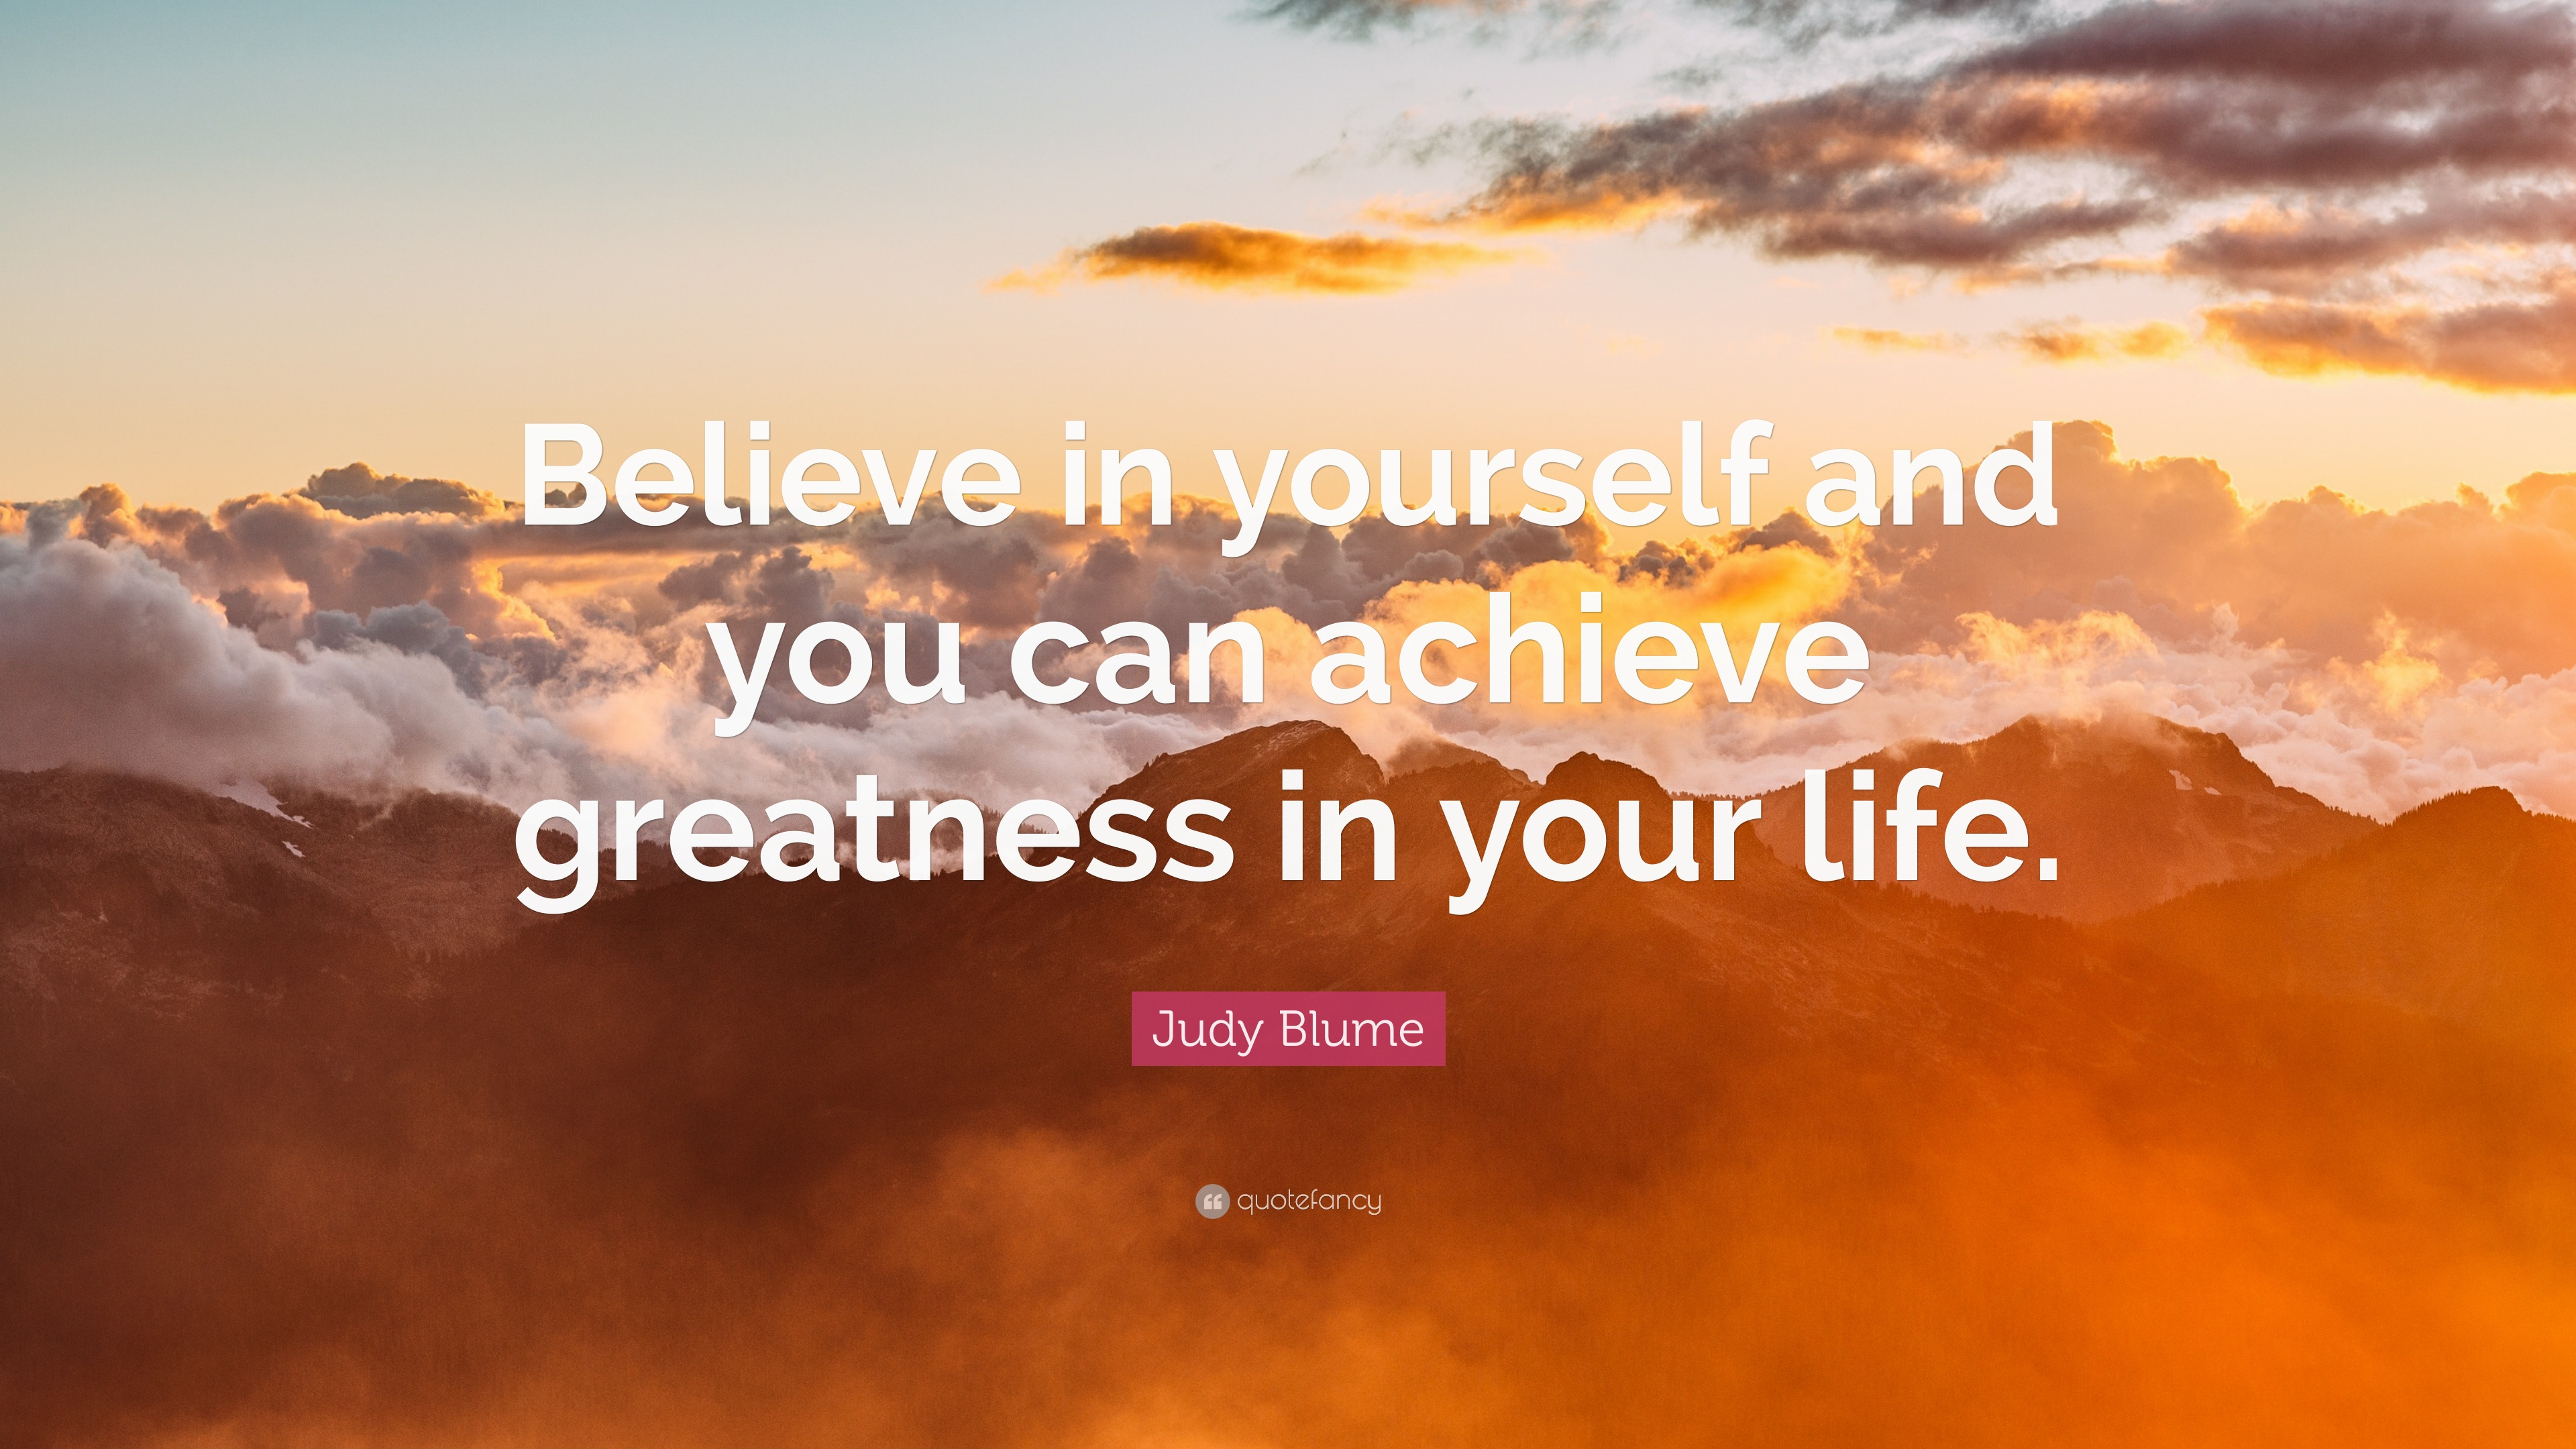 Judy Blume Quote Believe In Yourself And You Can Achieve Greatness